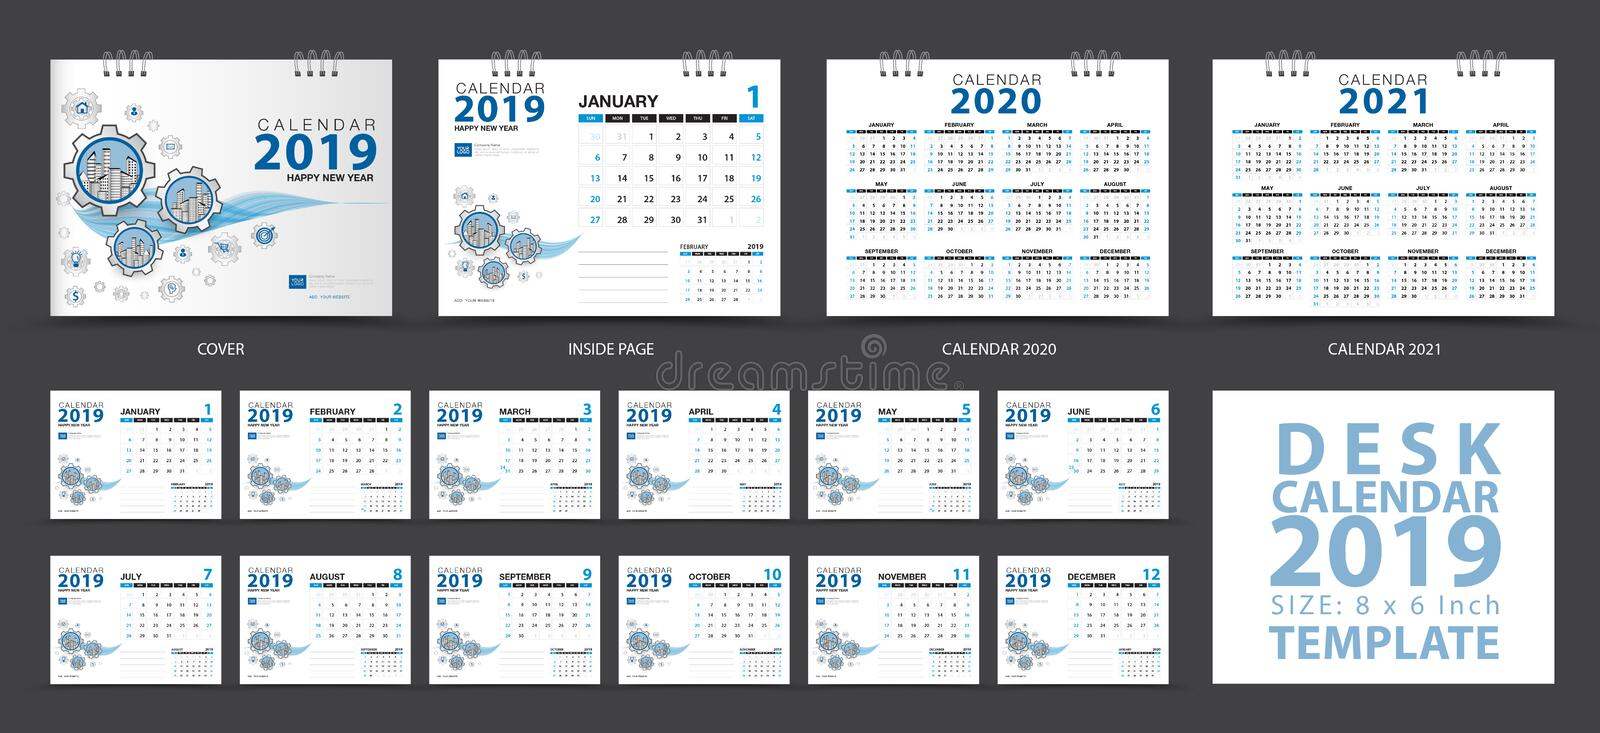 Desk calendar 2019 template, Set of 12 Months, Calendar 2020-2021 artwork, Planner, Week starts on Sunday, Stationery design royalty free illustration